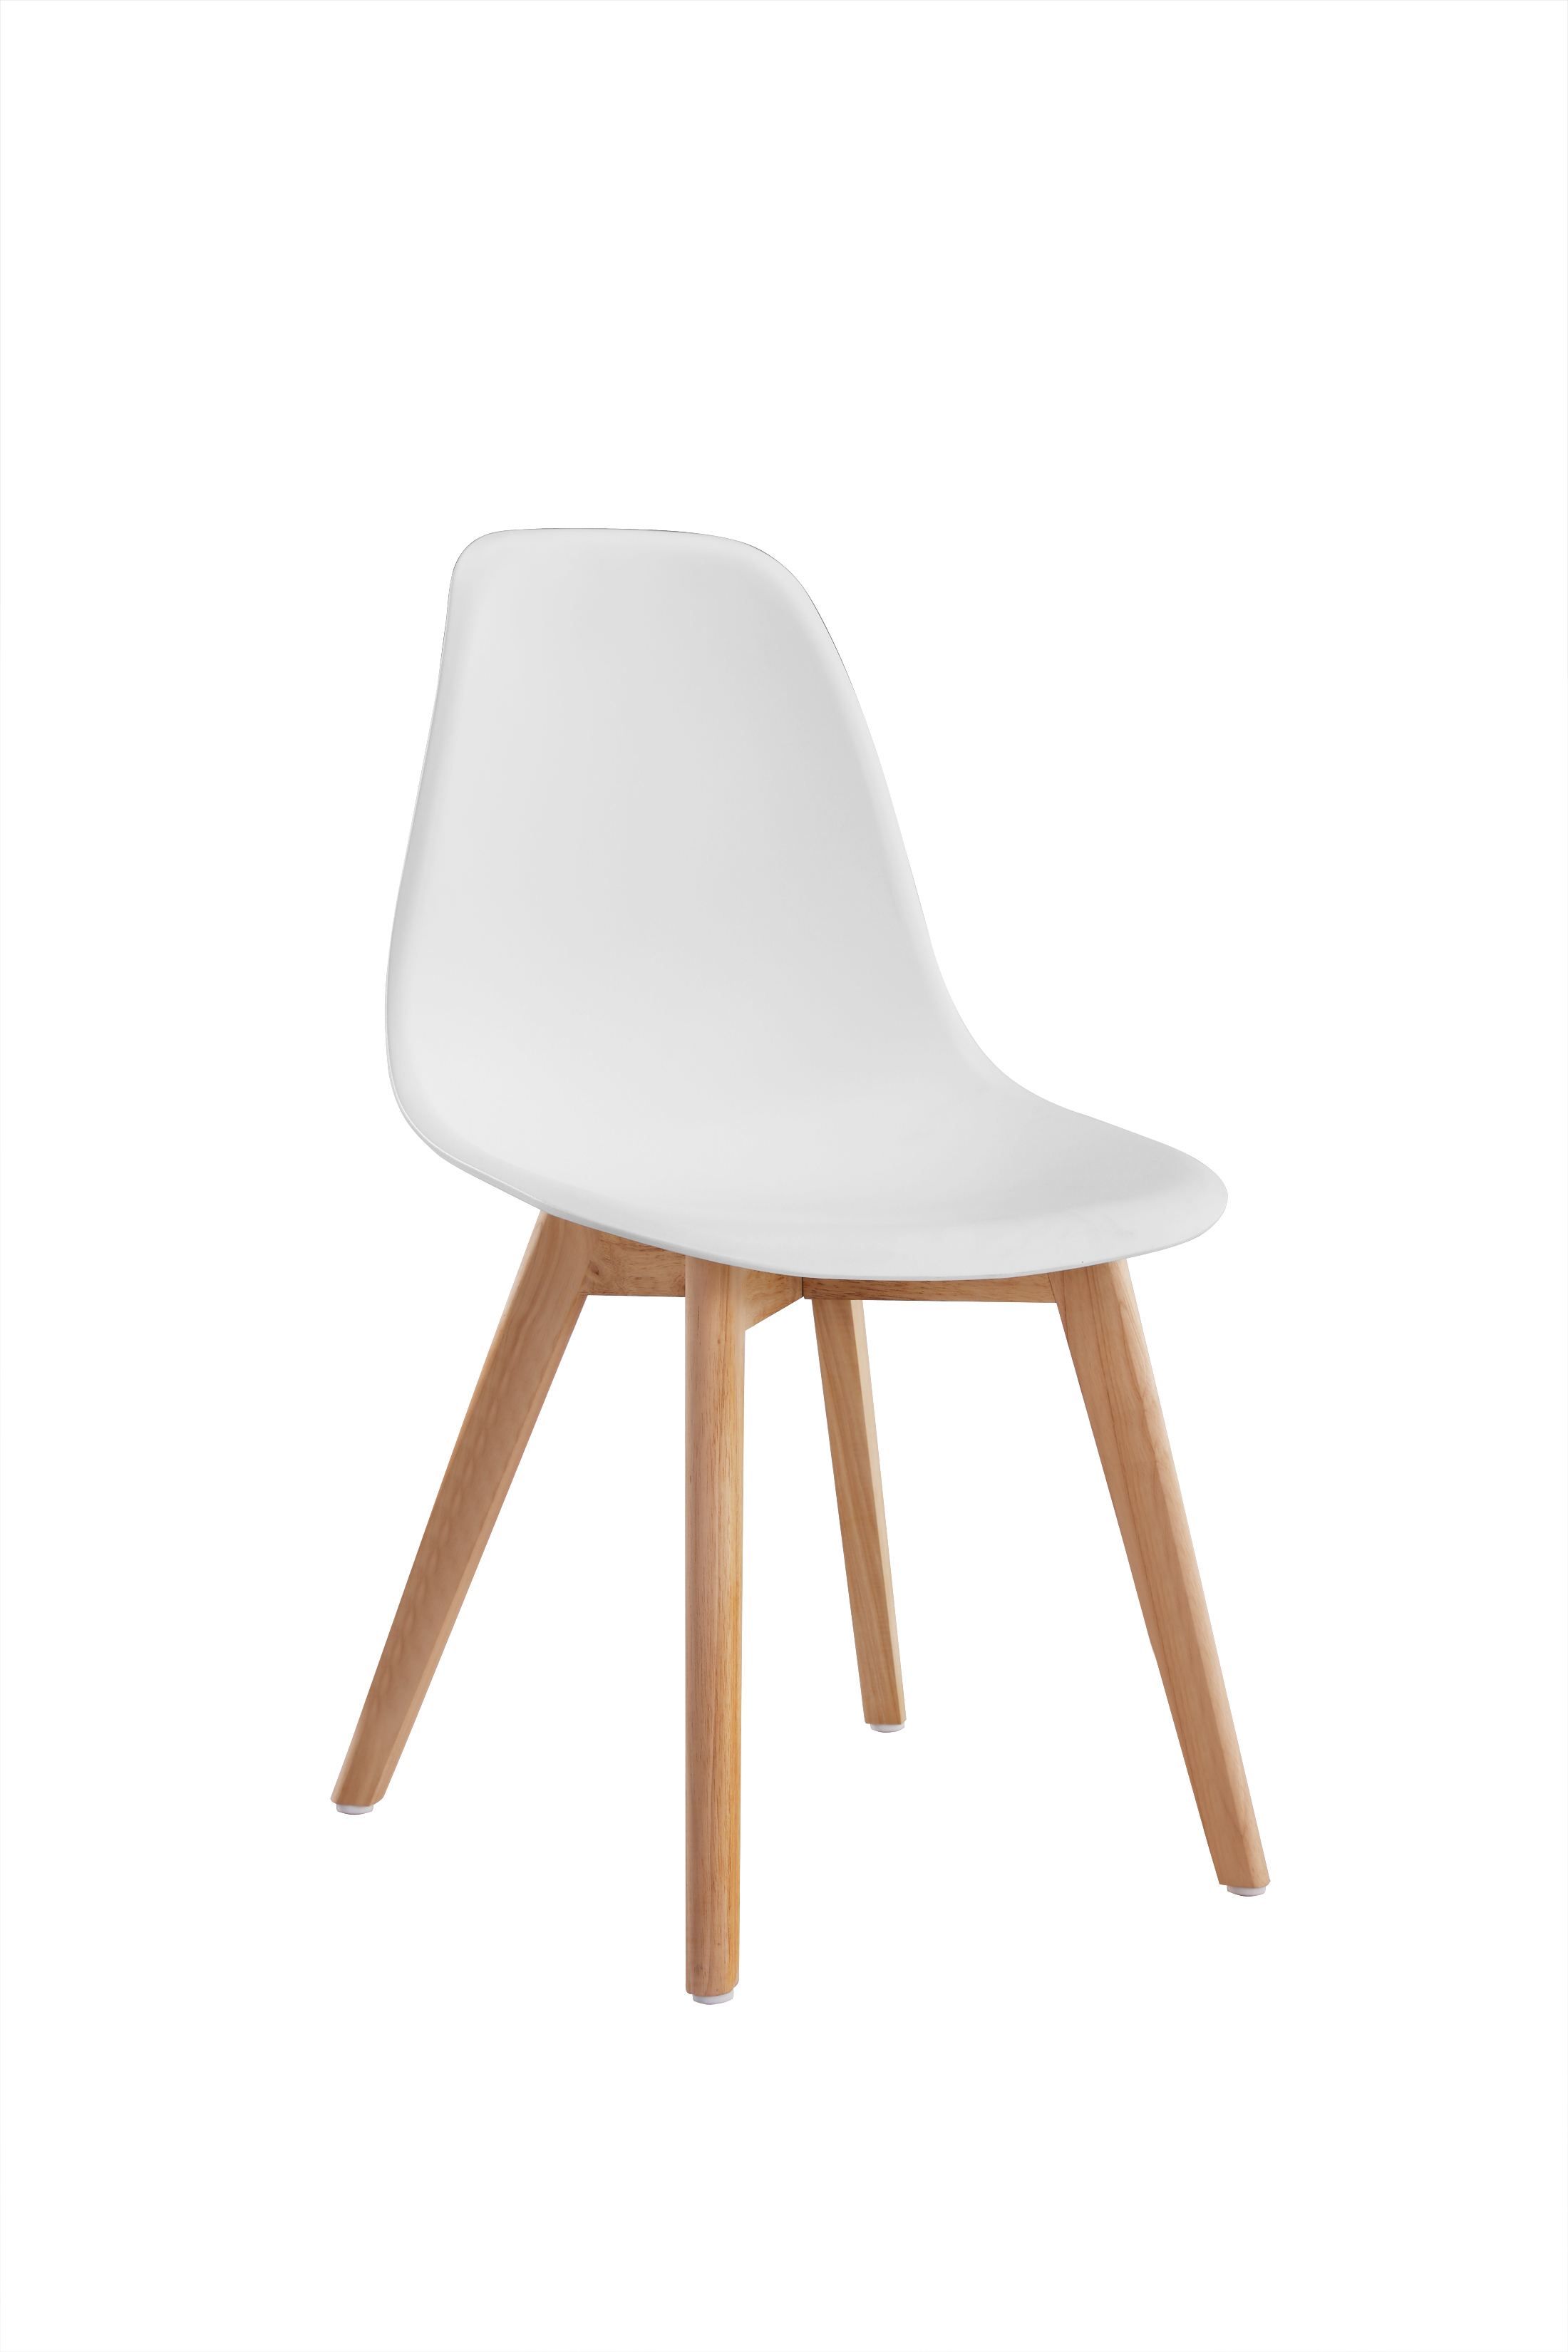 Miraculous Cheap Modern White Or Grey Polypropylene Wooden Legs Kitchen Chairs Plastic Dining Chairs Price Buy Cheap Plastic Chair Price Modern Plastic Bralicious Painted Fabric Chair Ideas Braliciousco